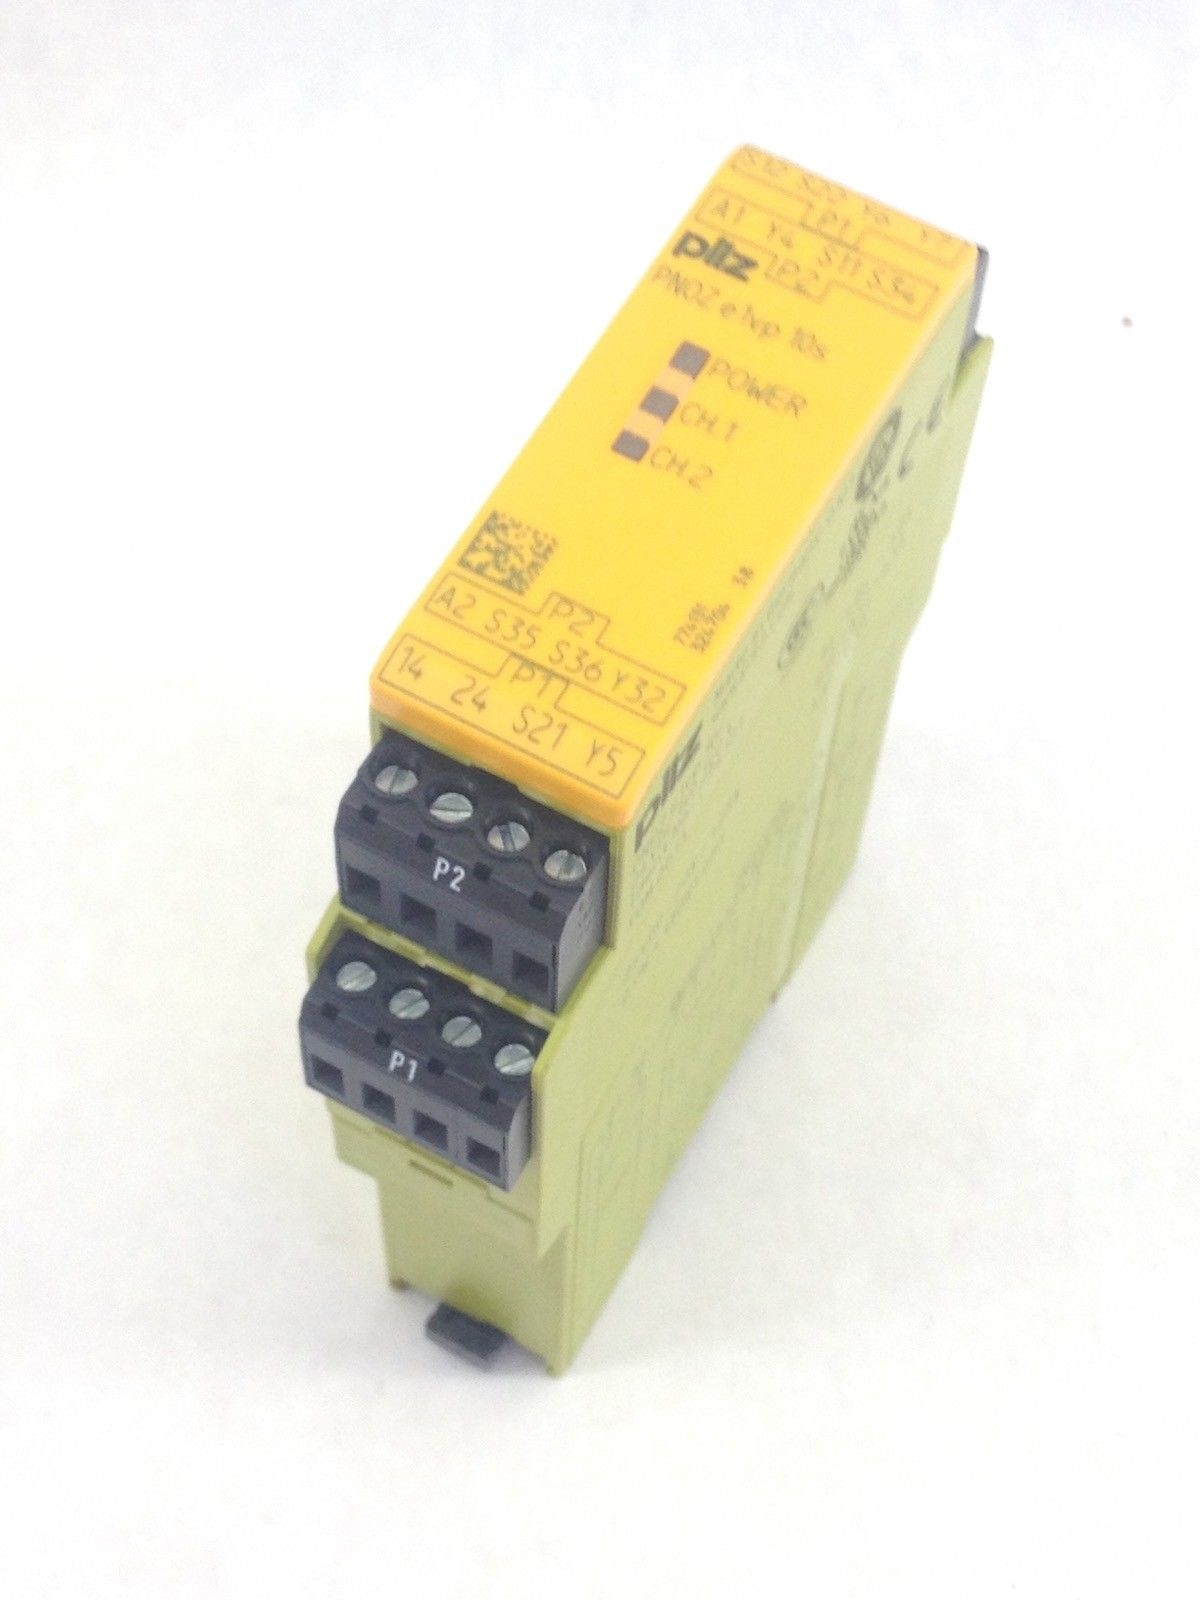 PILZ PNOZE1VP10S SAFETY EMERGENCY STOP RELAY 24VDC (A825) 3